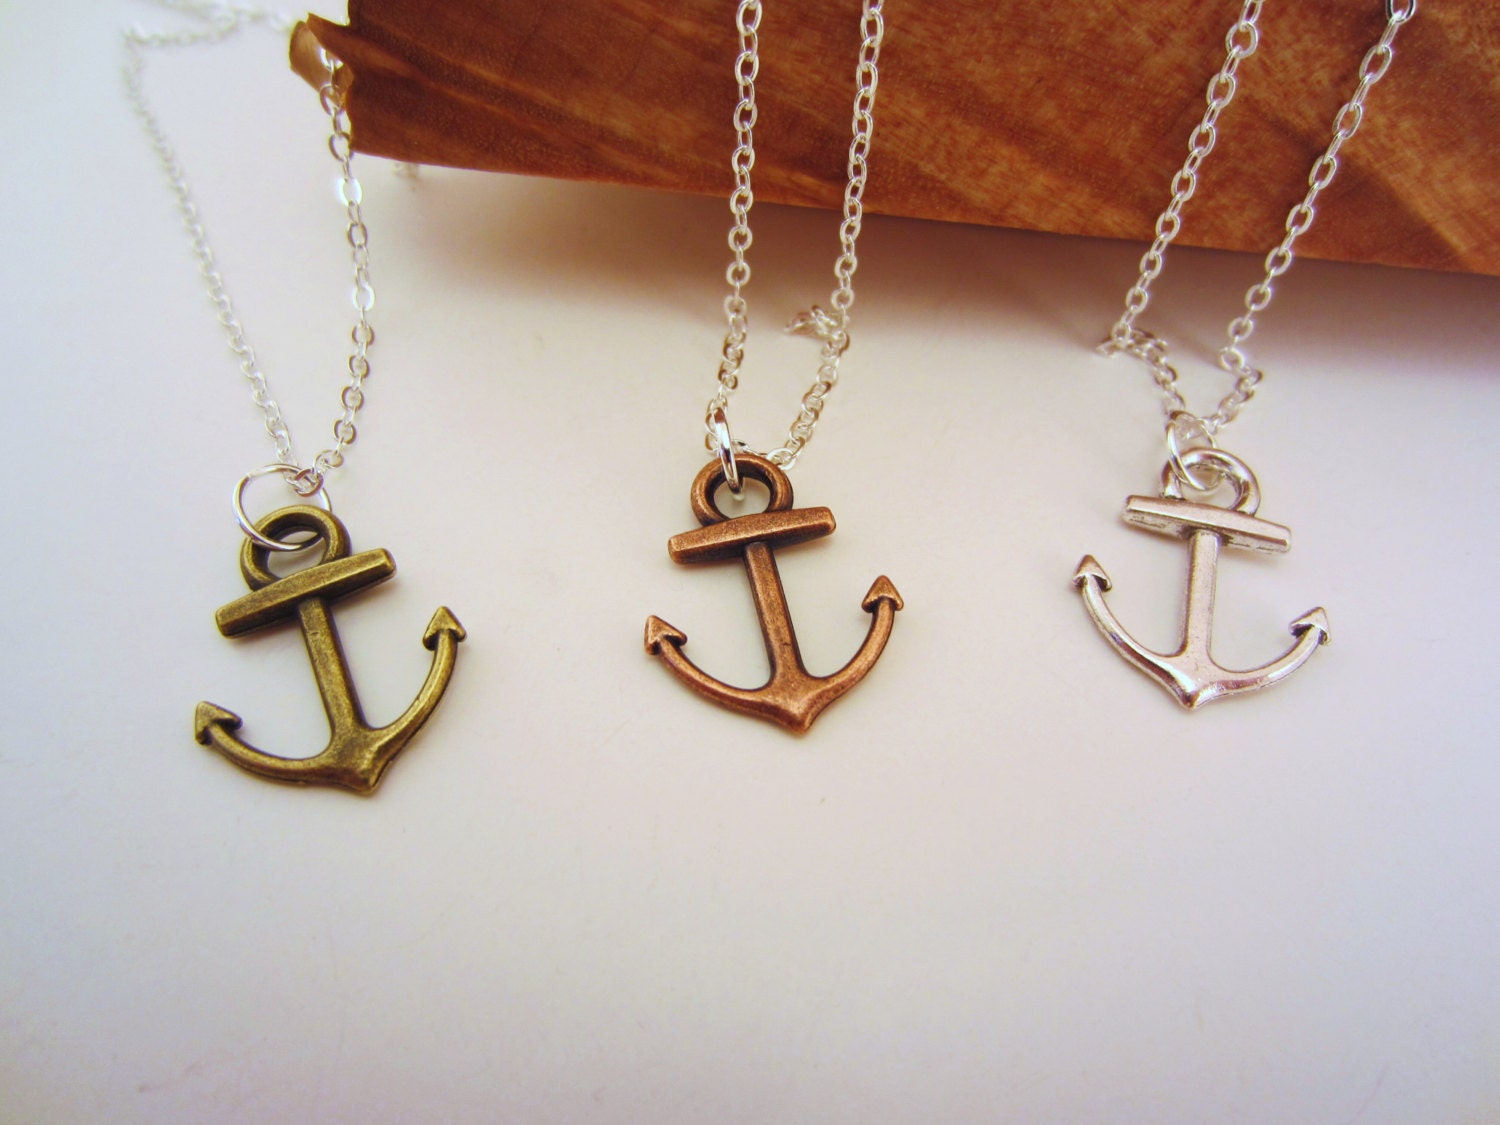 3 best friend necklaces. Anchor necklace. Best friend gift.